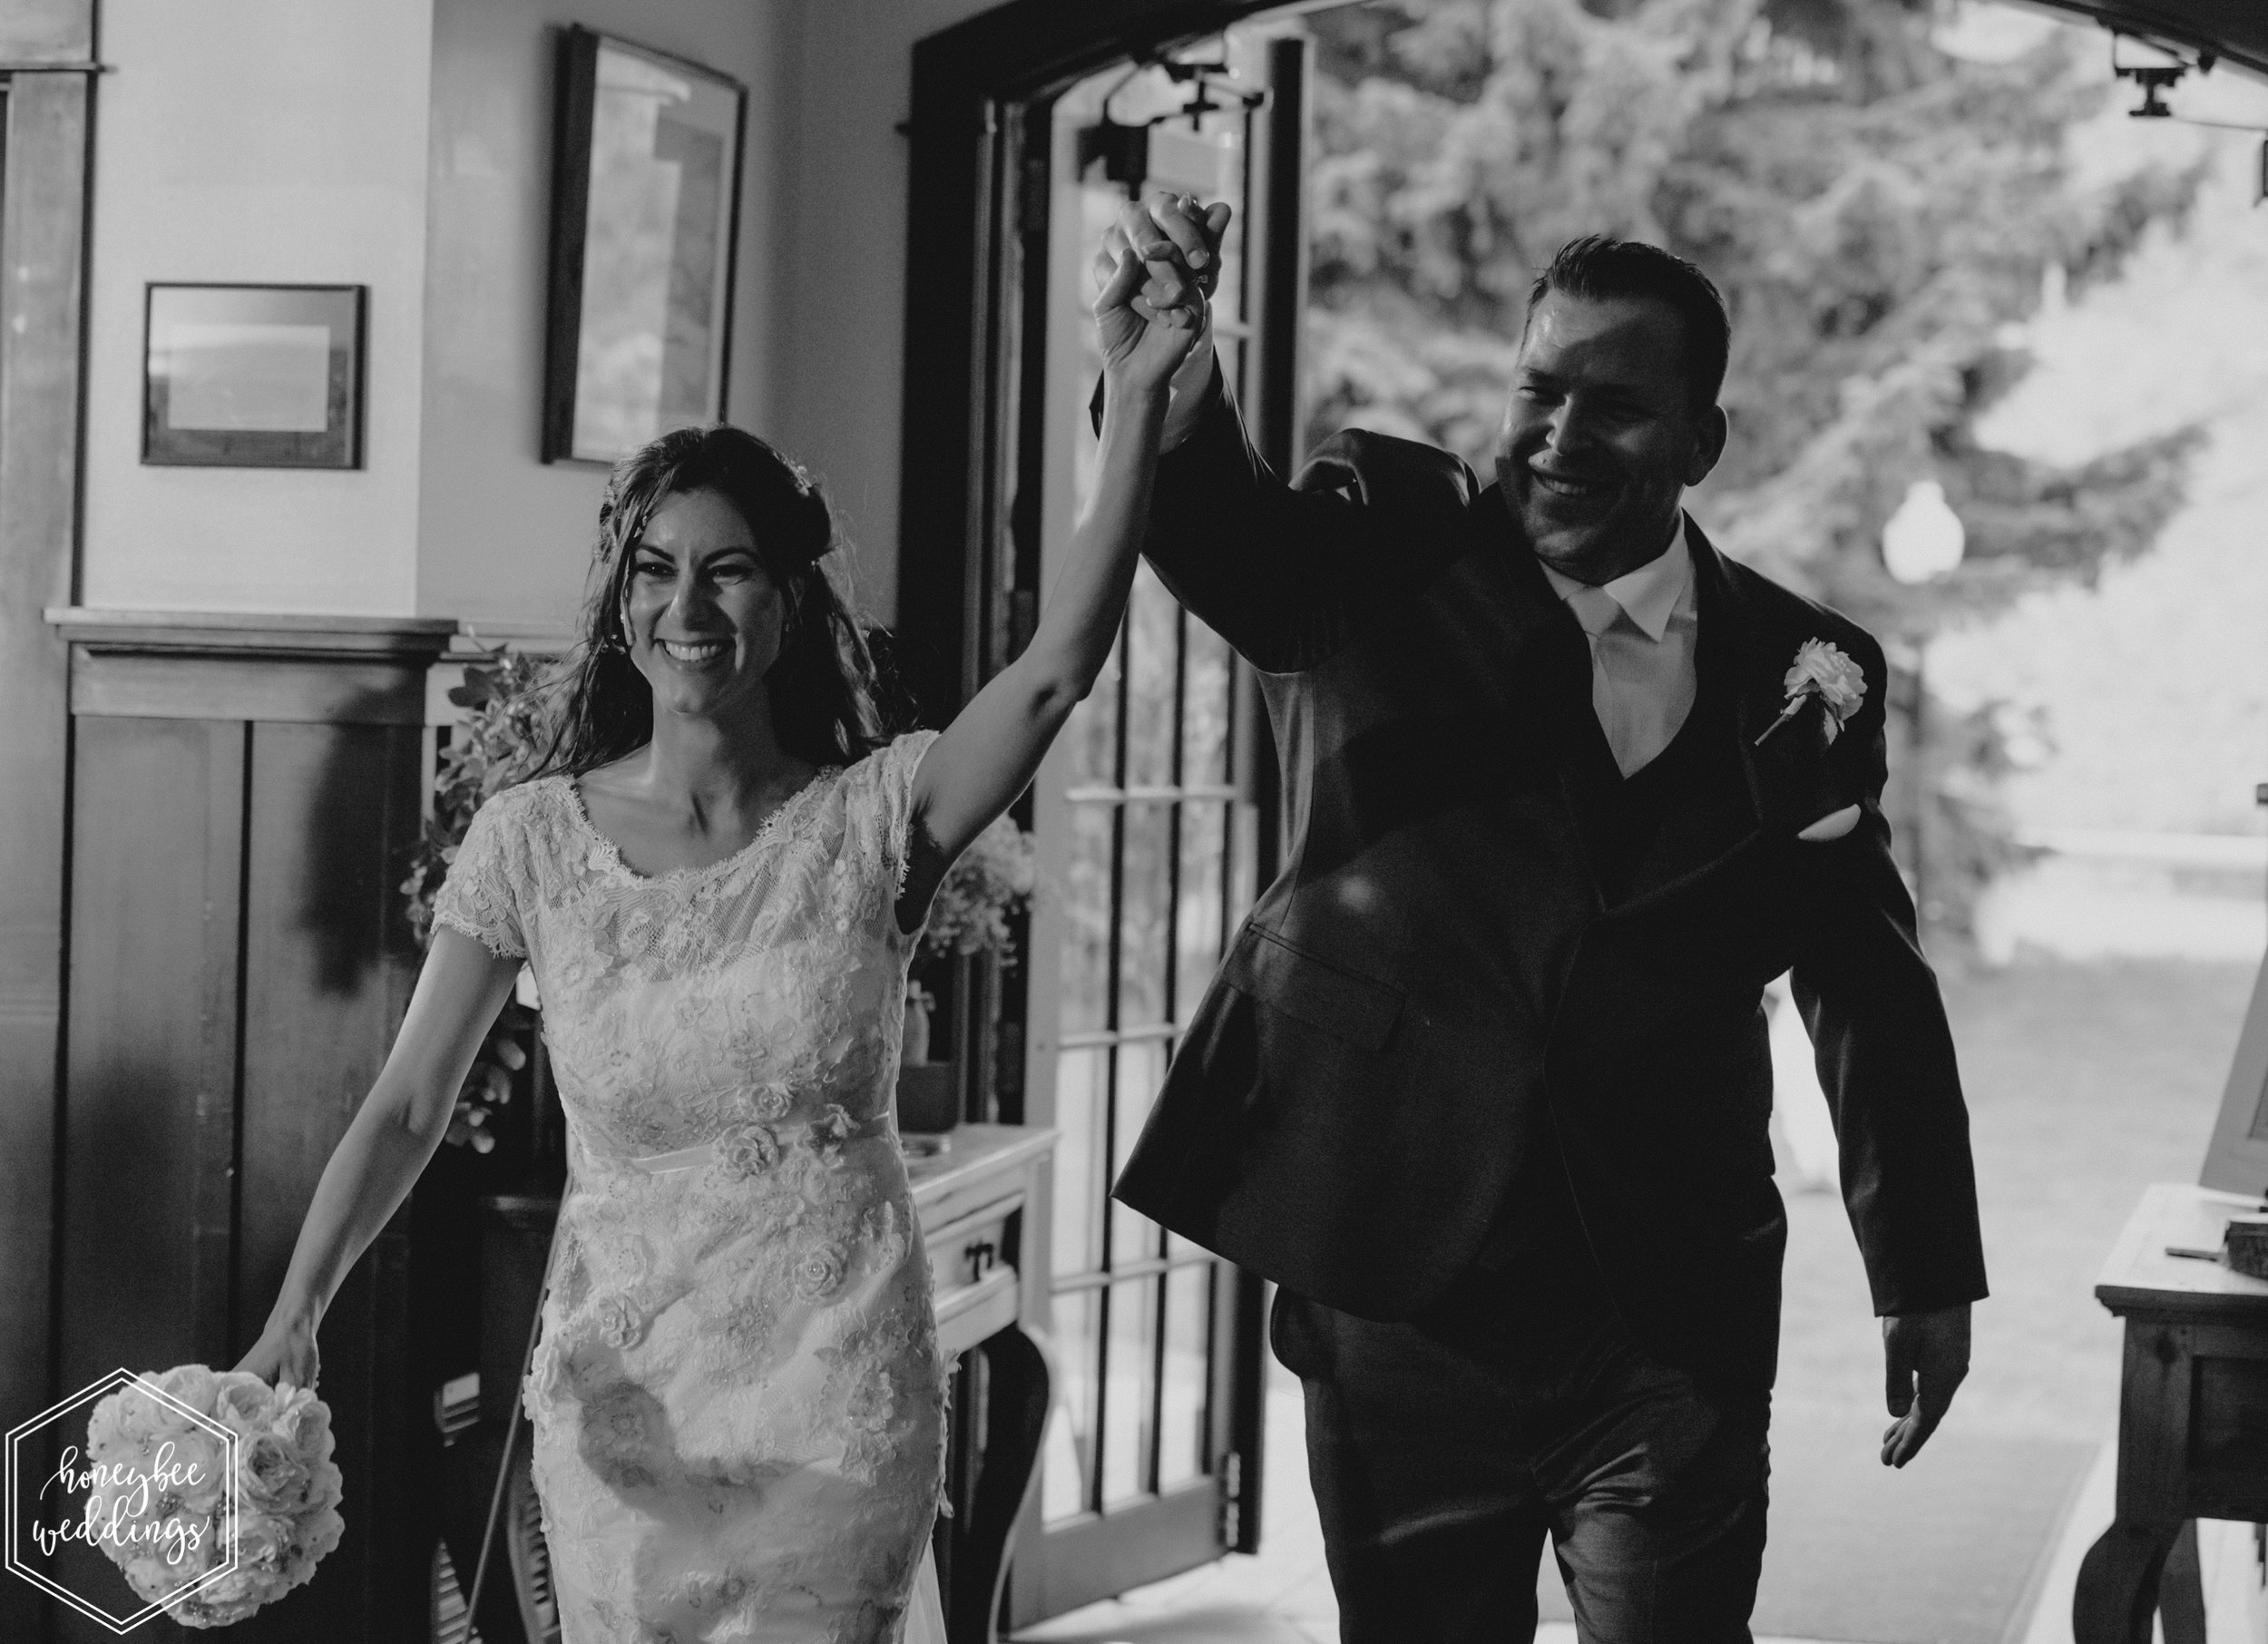 037Montana wedding photographer videographer_Chico hot springs wedding_Honeybee Weddings_Claudia & Bill_June 03, 2019-688.jpg